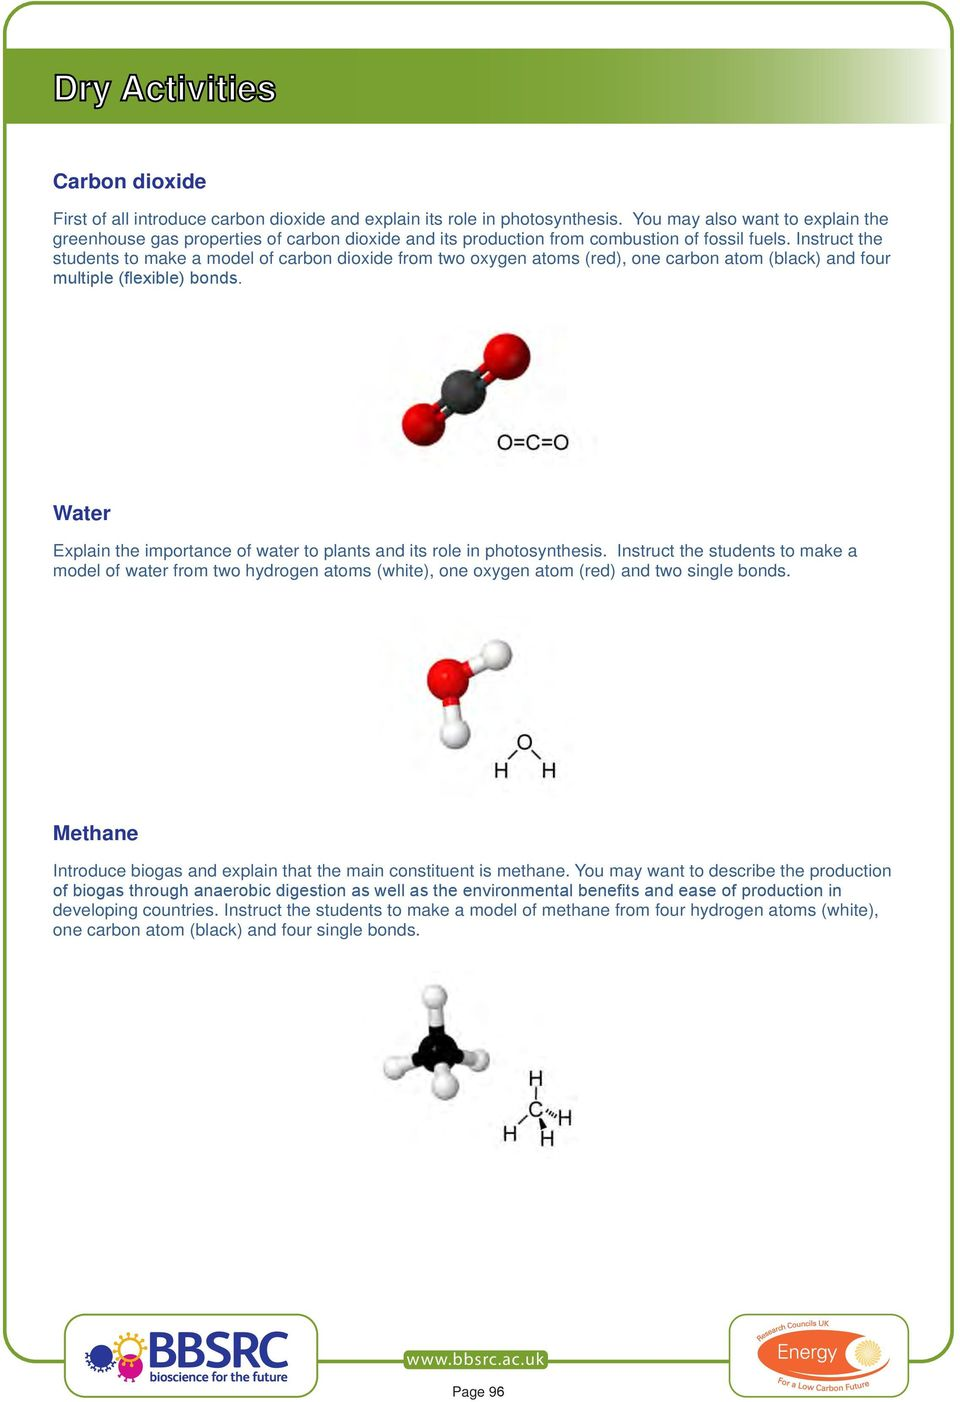 Instruct the students to make a model of carbon dioxide from two oxygen atoms (red), one carbon atom (black) and four multiple (flexible) bonds.